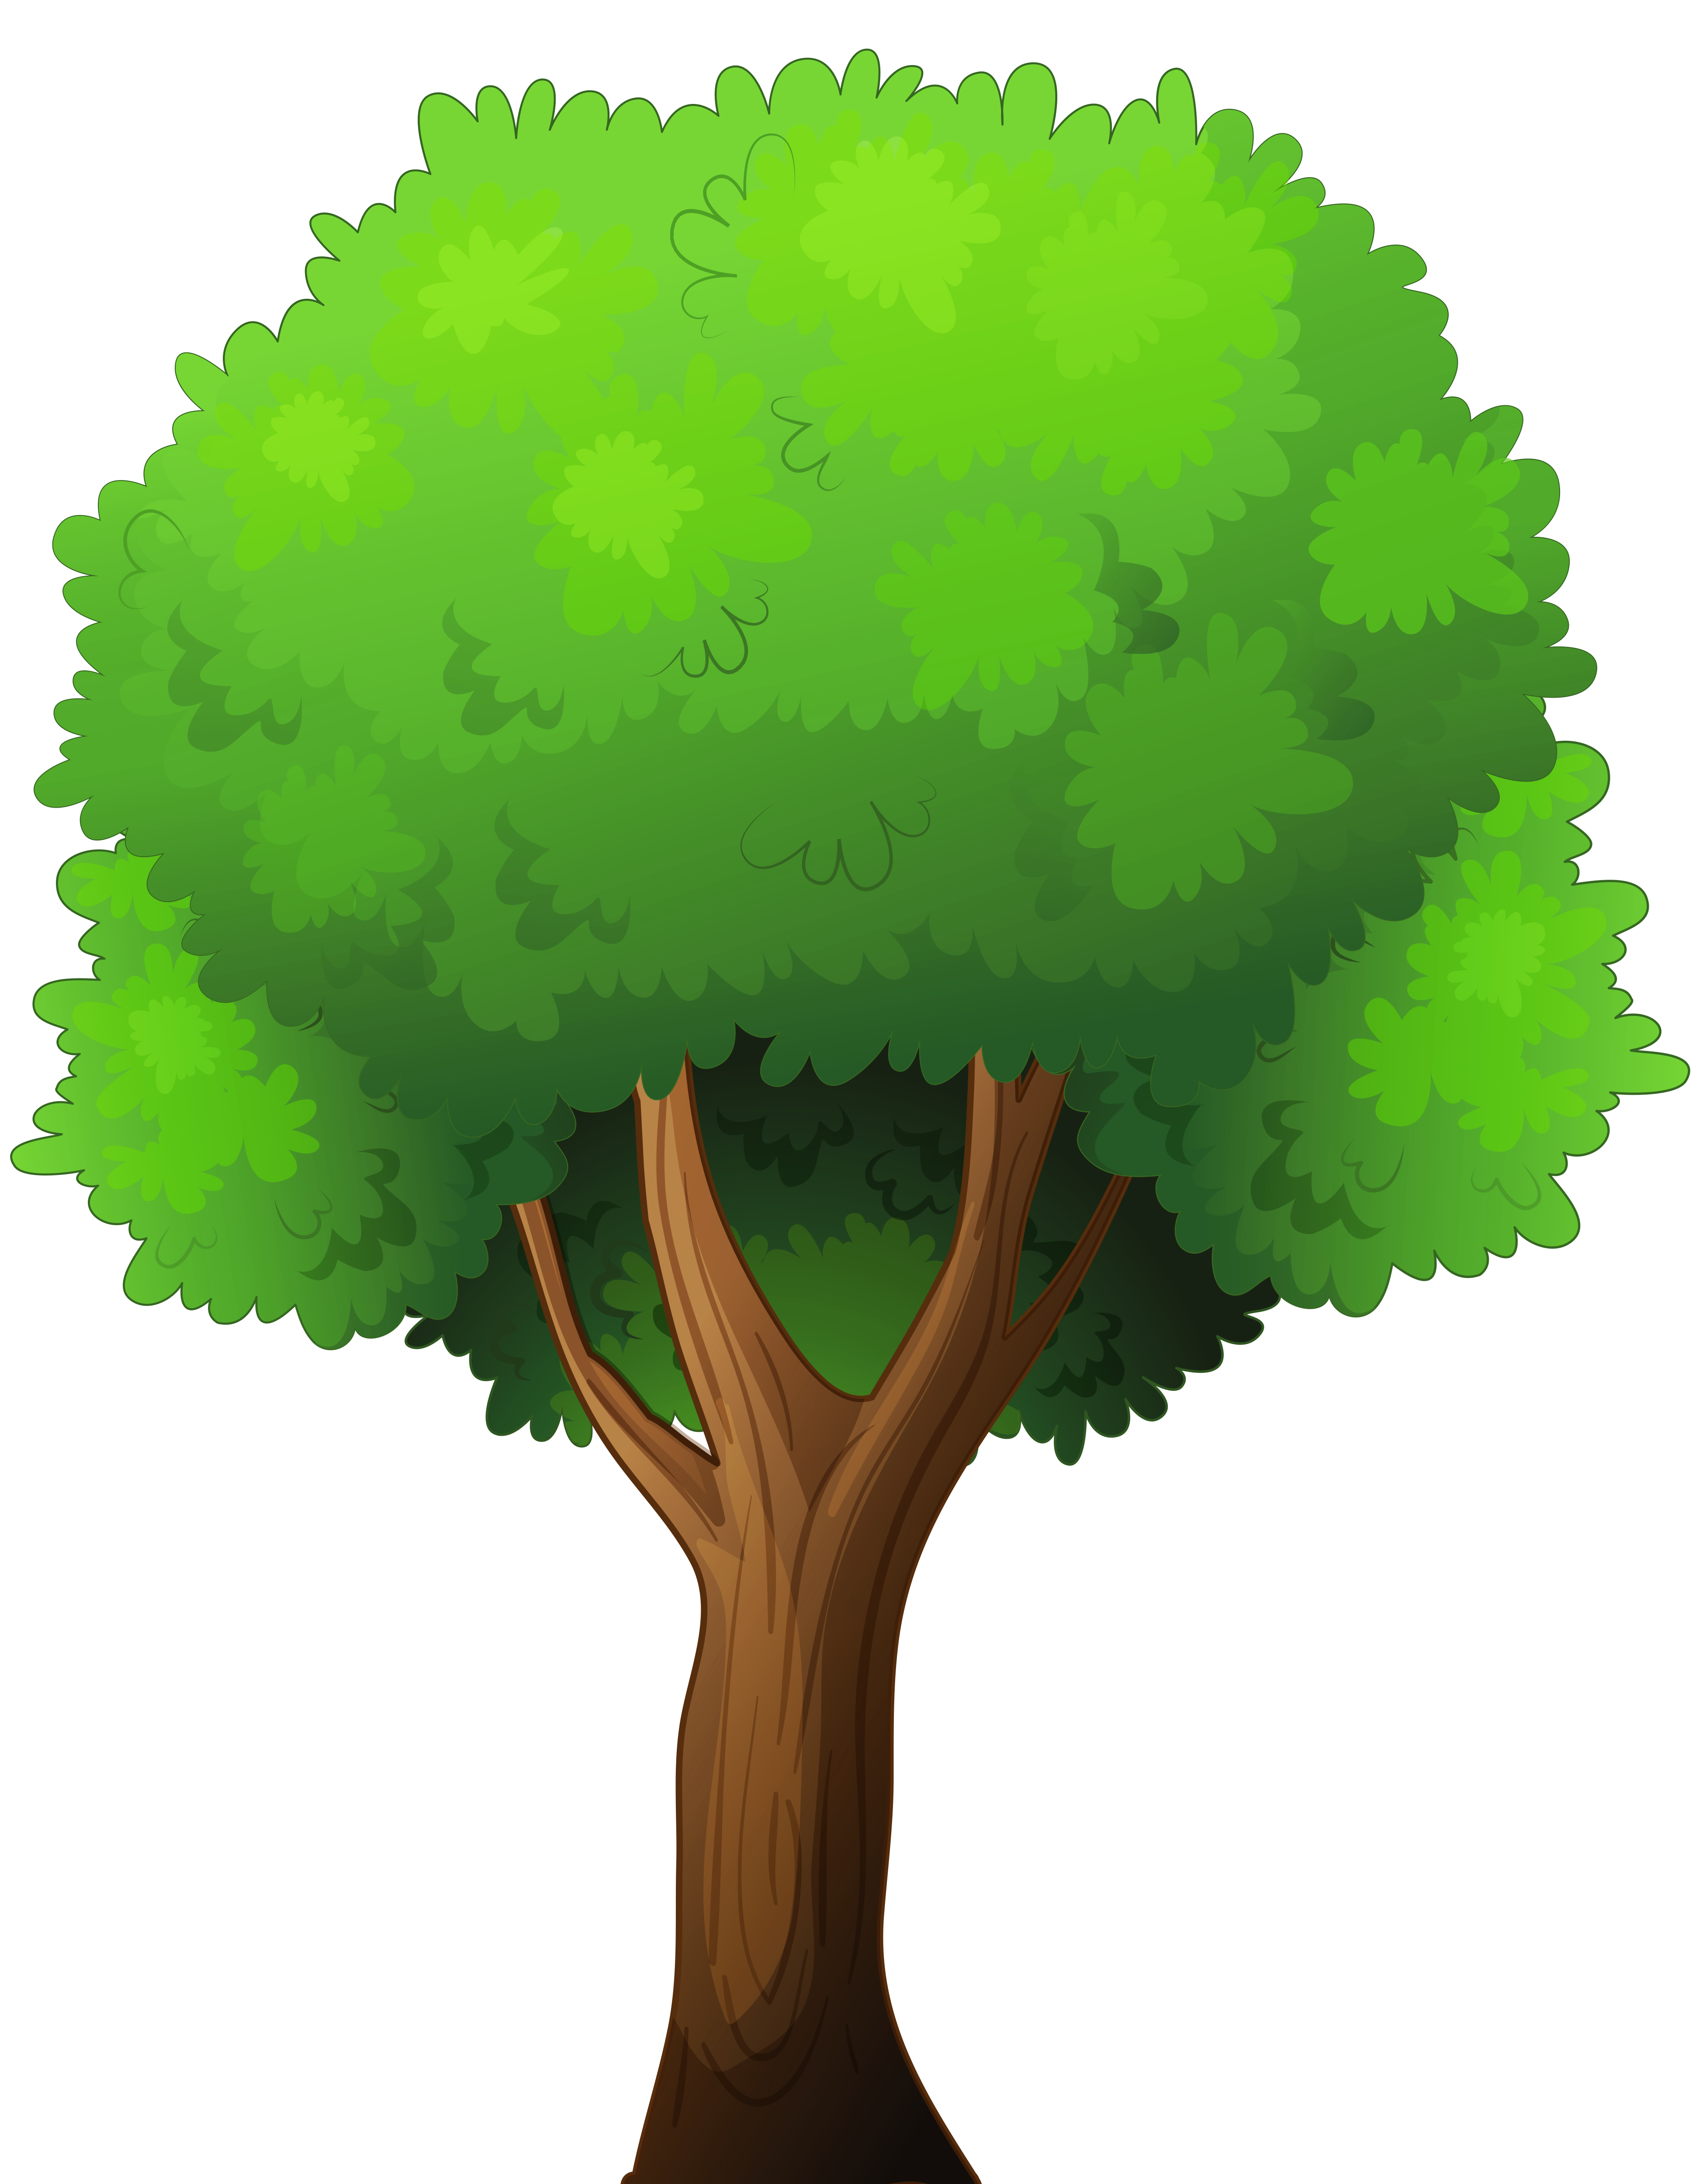 Tree clipart #7, Download drawings